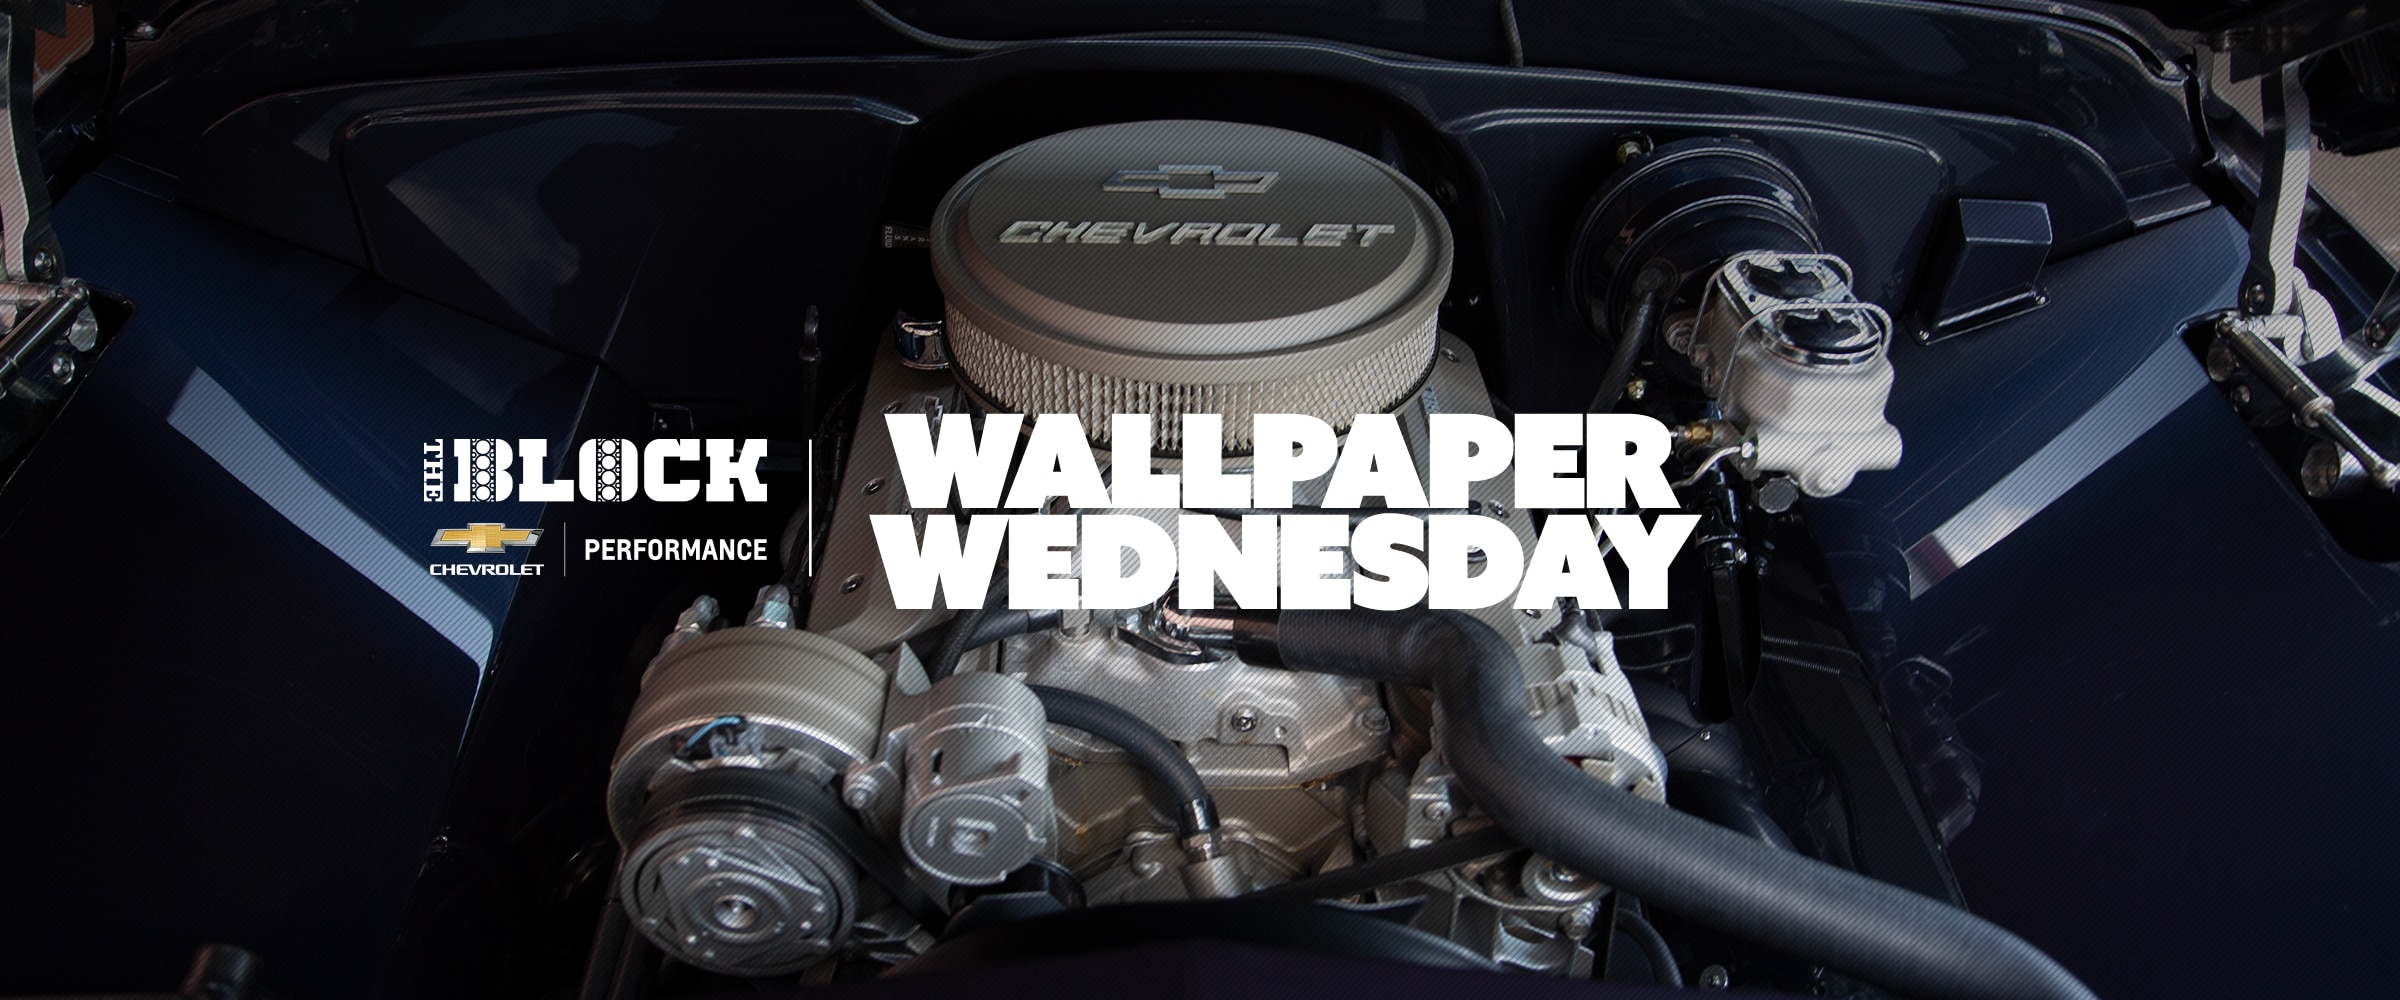 Parts, Chevy, Chevrolet, Chevrolet Performance, C10, Chevrolet C10, 1967 C10,Trucks, Chevy Trucks, Engines, Crate Engines, ZZ6, ZZ6 Turn-Key Wallpaper Wednesday, Downloads